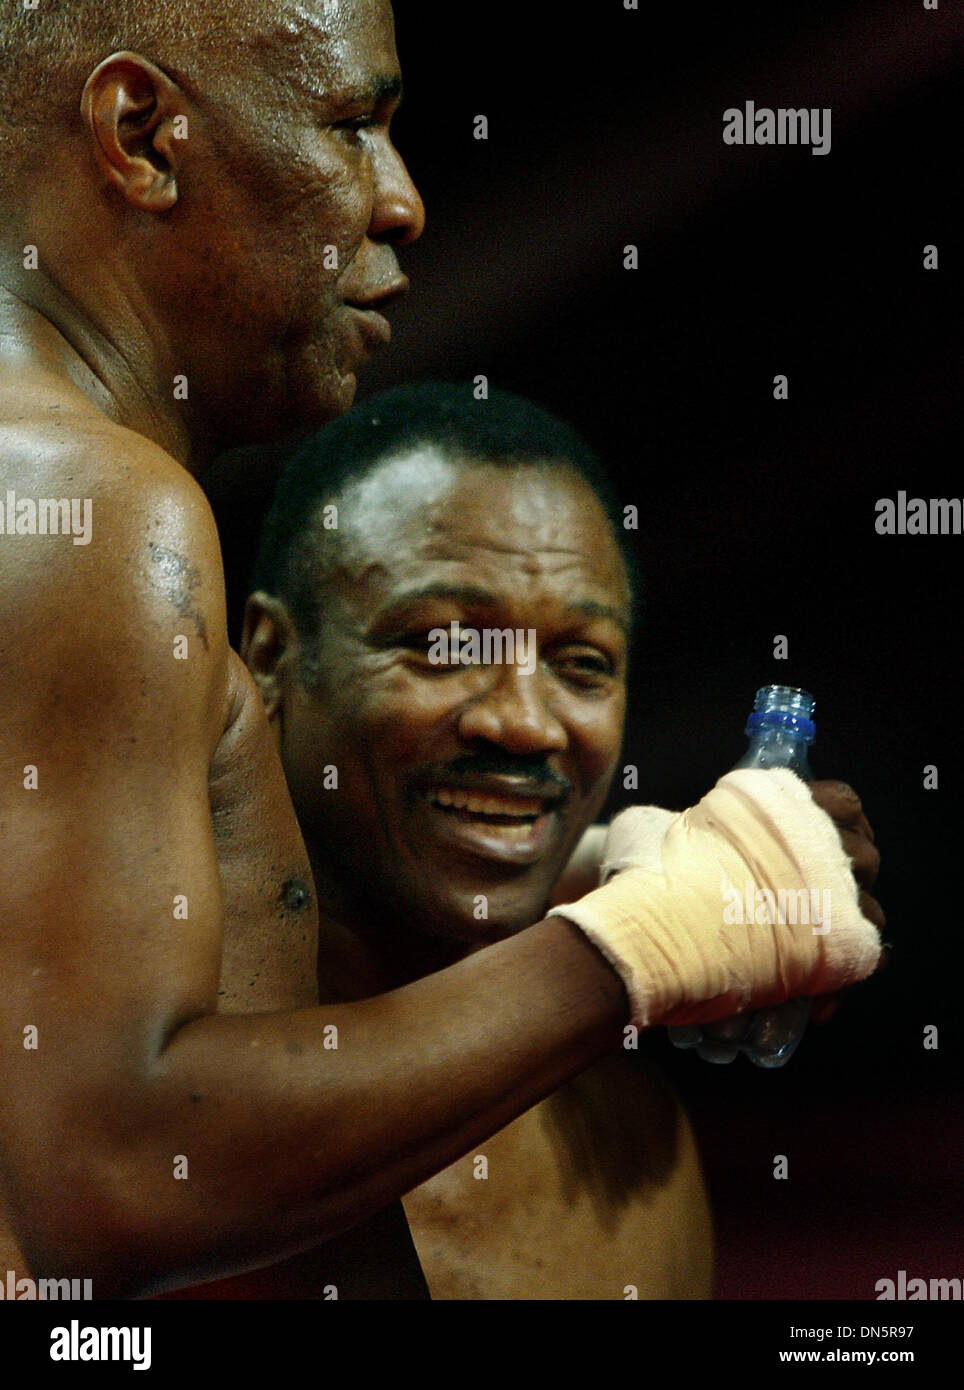 Nov. 30, 2006 - Memphis, Tennessee, U.S. - JOE FRAZIER, 62, right, and Memphis Mayor WILLIE HERENTON, 66, left, hug after their benefit boxing match at the Peabody Hotel. (Credit Image: © Mark Weber/The Commercial Appeal/ZUMApress.com) - Stock Image